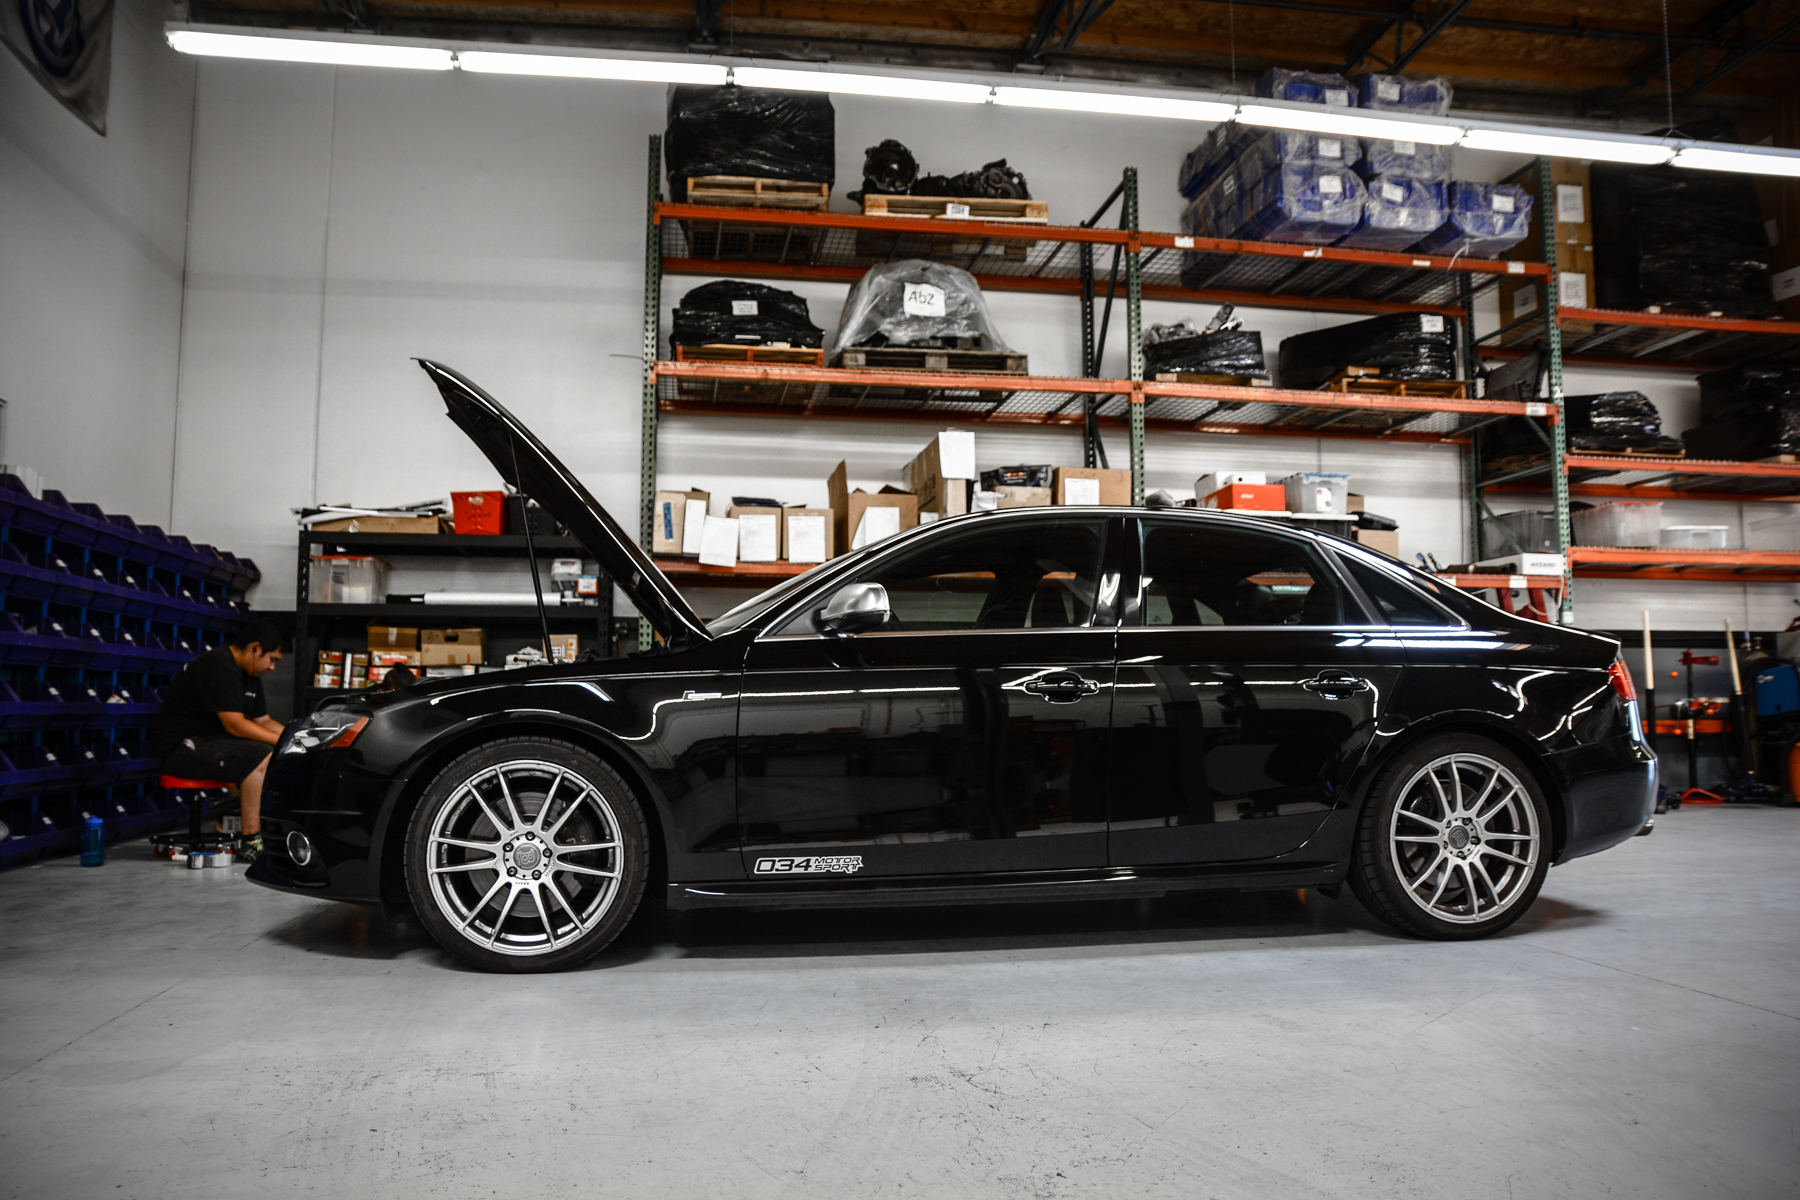 034Motorsport Dual-Pulley Stage 2+ B8 Audi S4 3.0 TFSI Supercharged